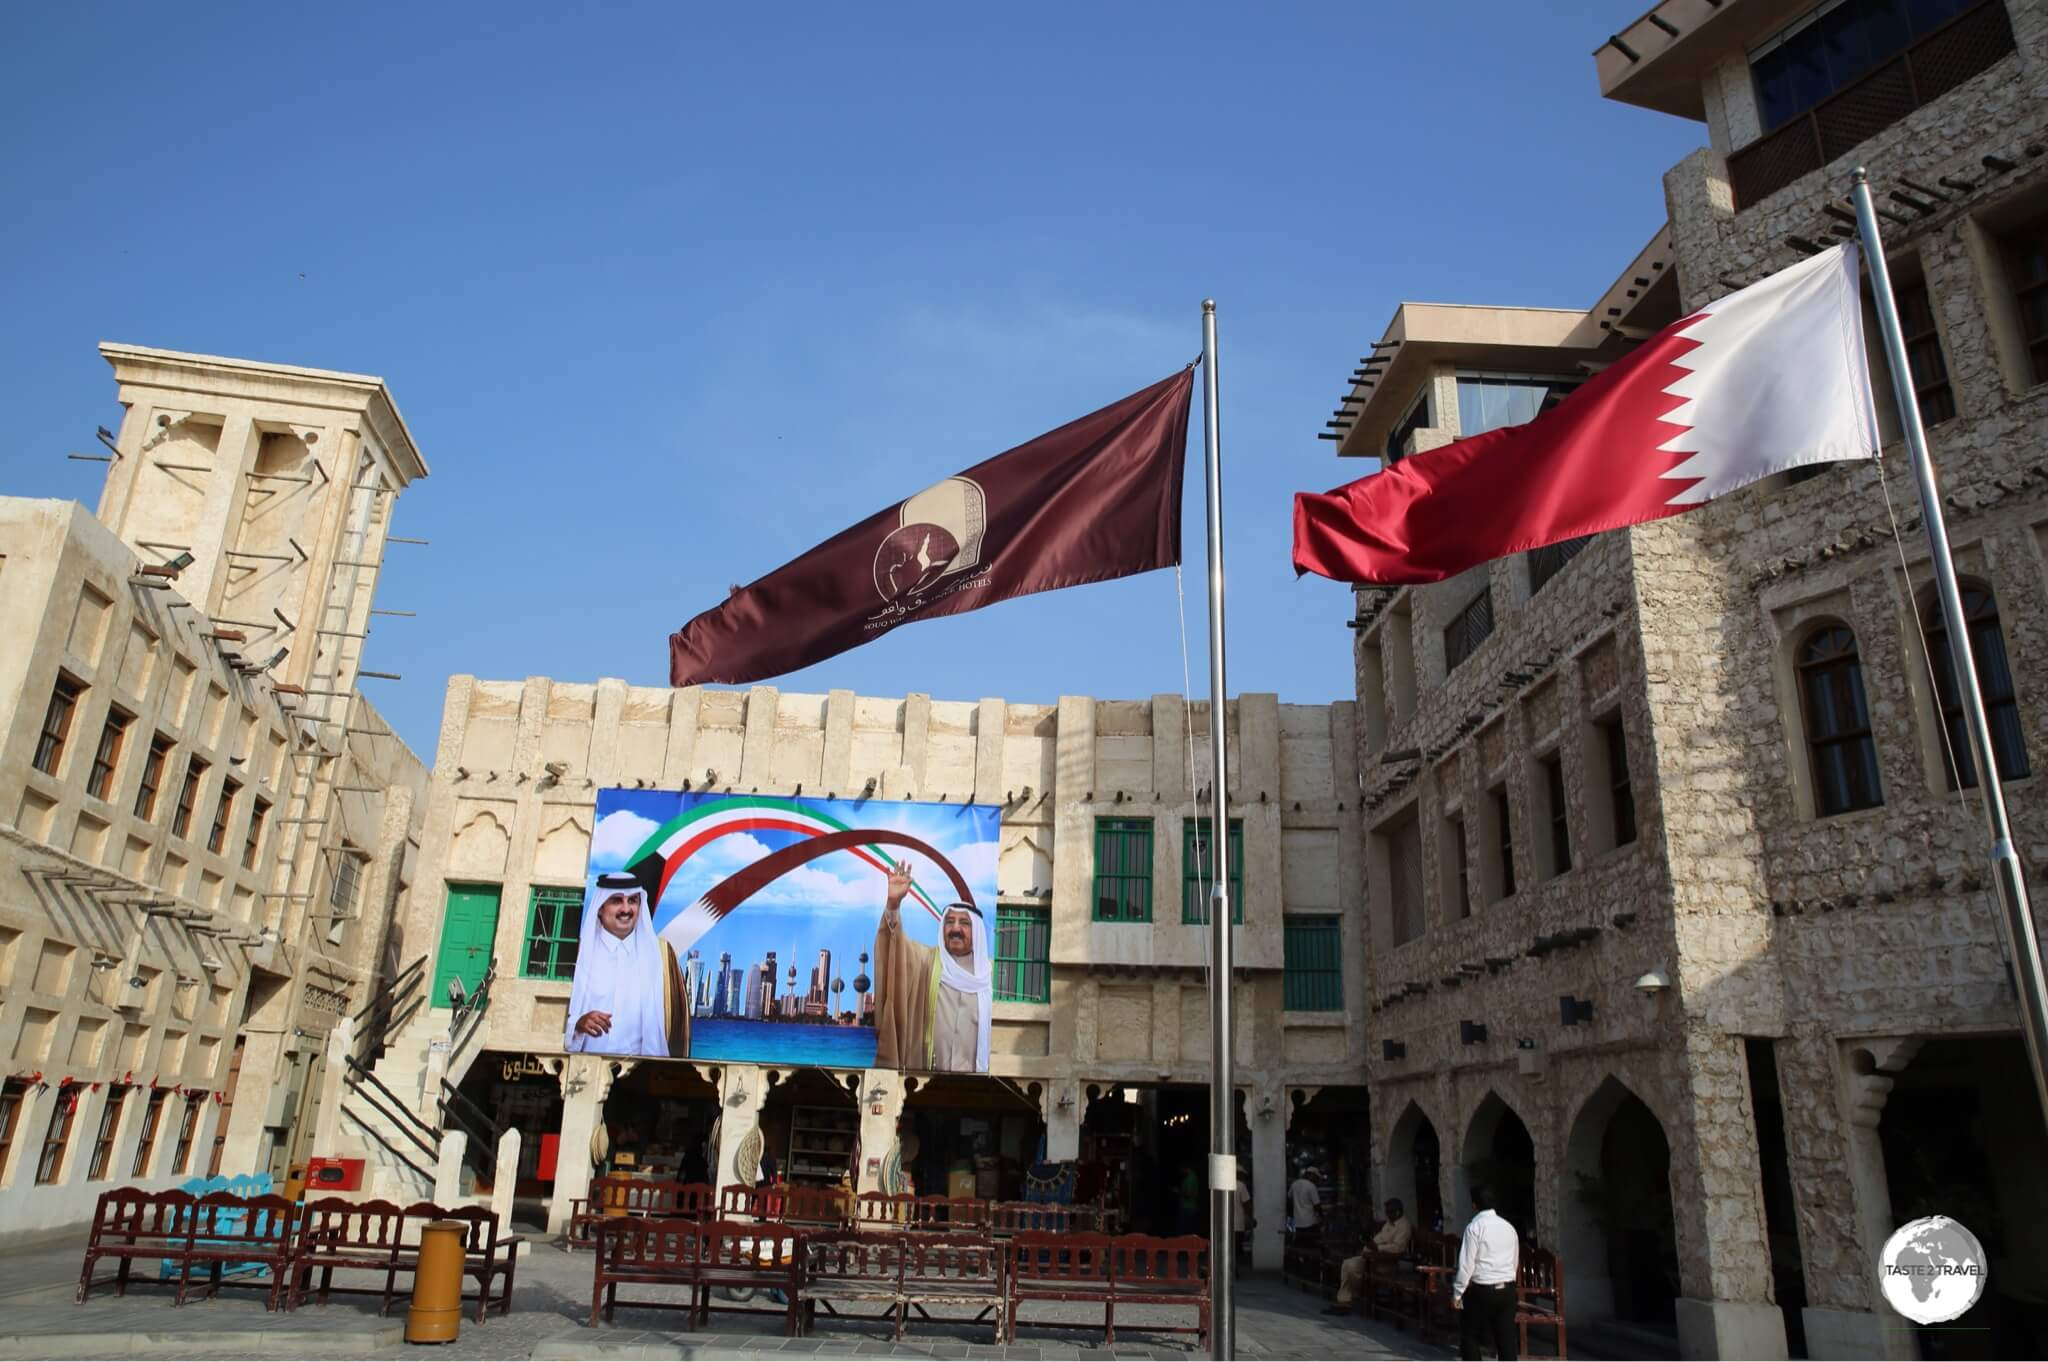 Souk Waqif lies in the heart of Doha old town.